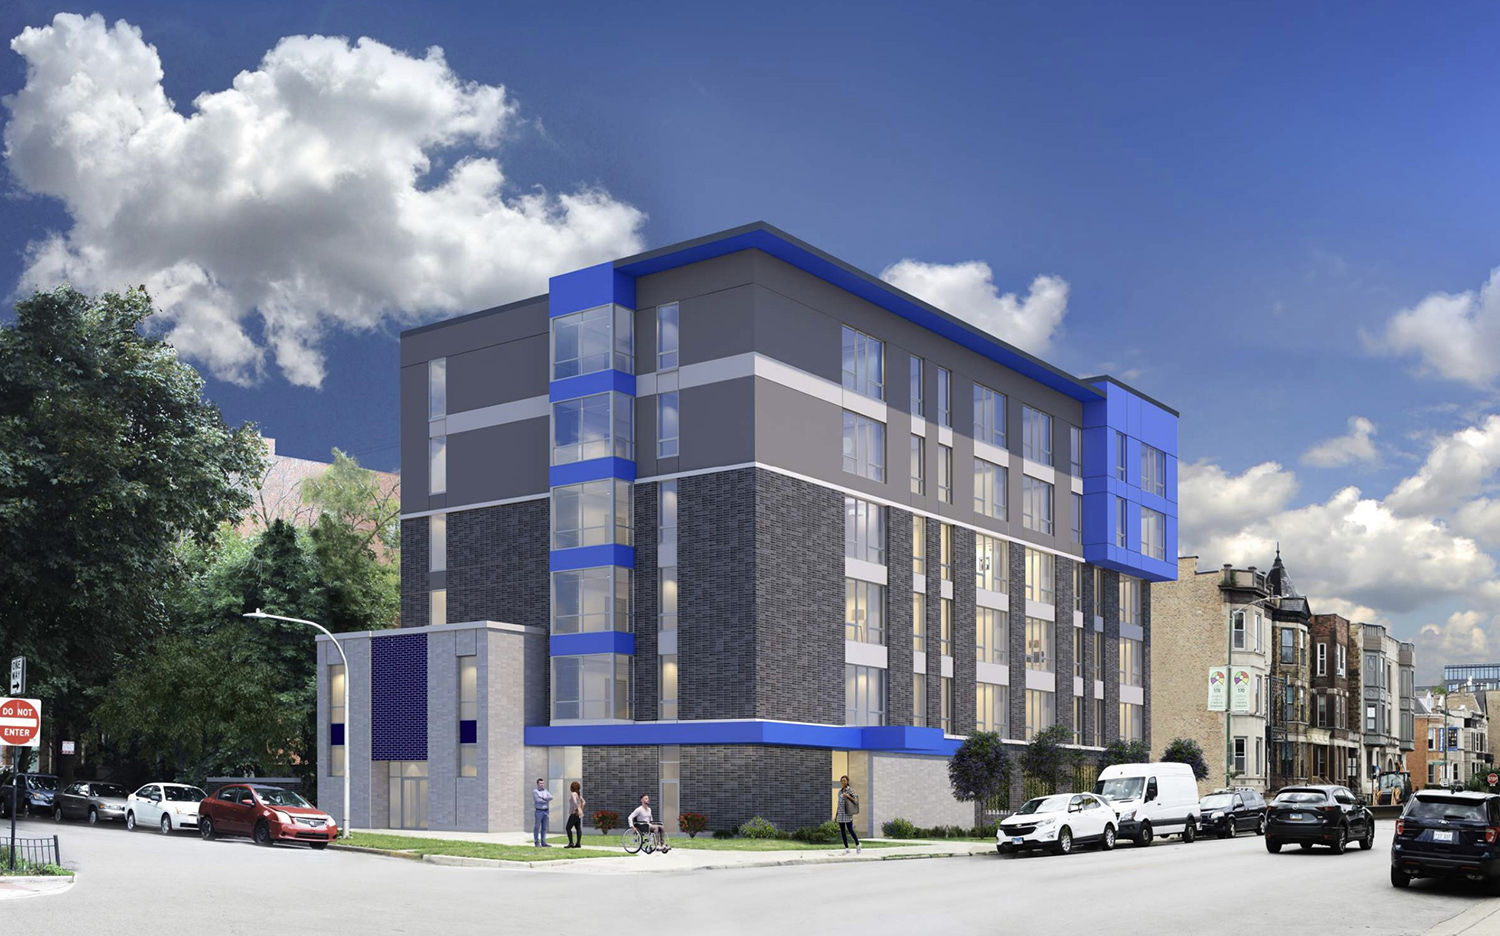 835 W Addison Street. Rendering by Weese Langley Weese